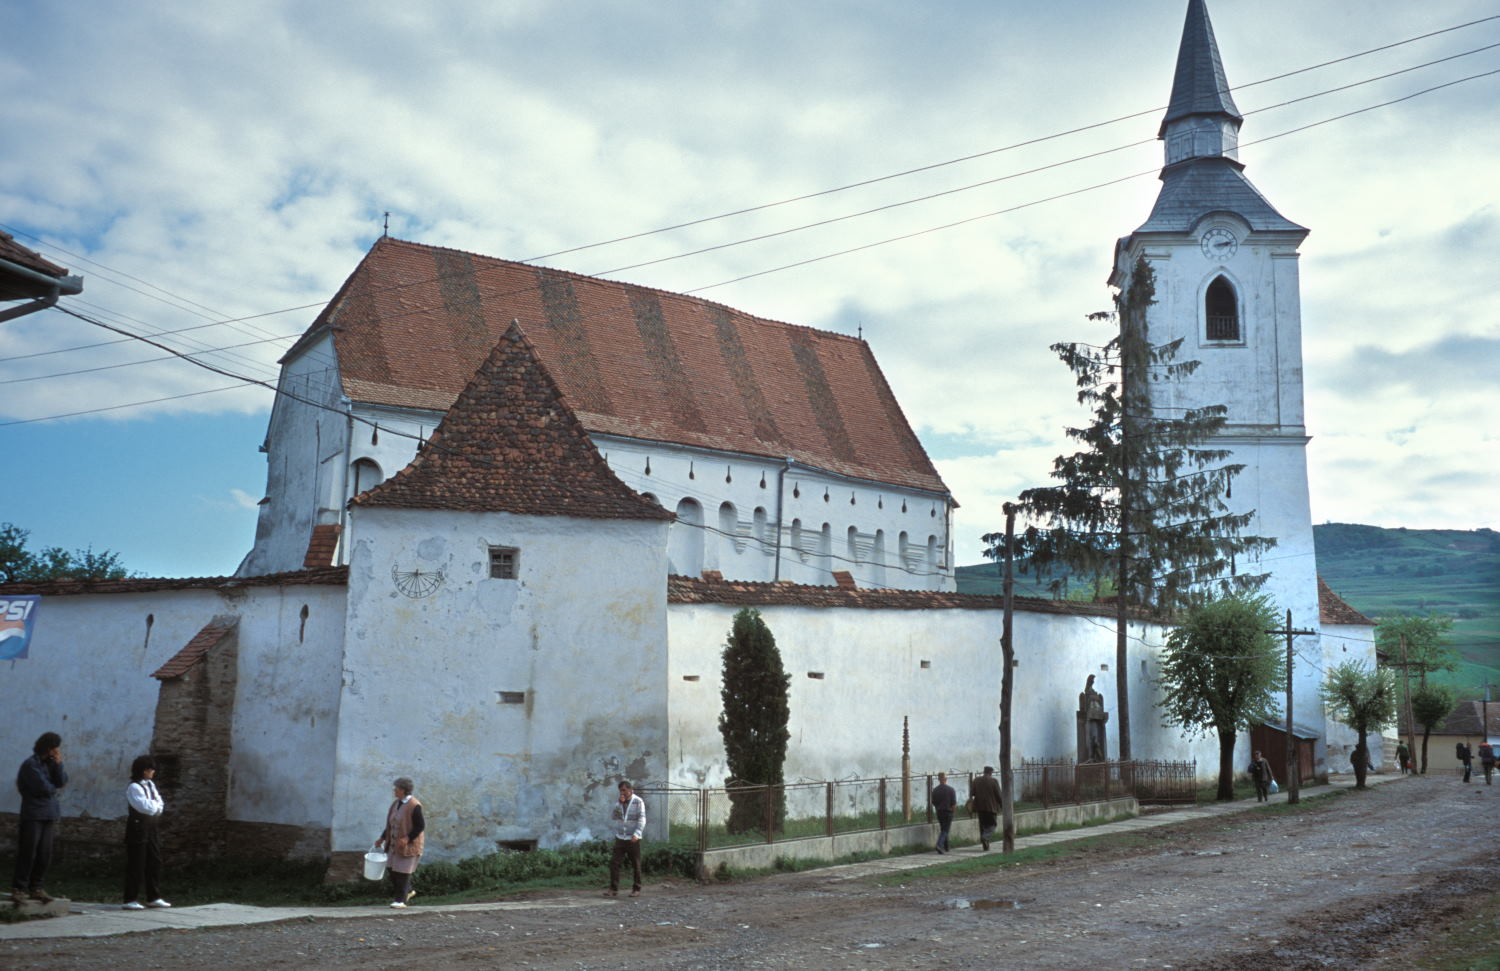 The fortified church in Szekelyderz dariju village in Transylvania (Leich M6 and 35mm f/1.4 Summilux)